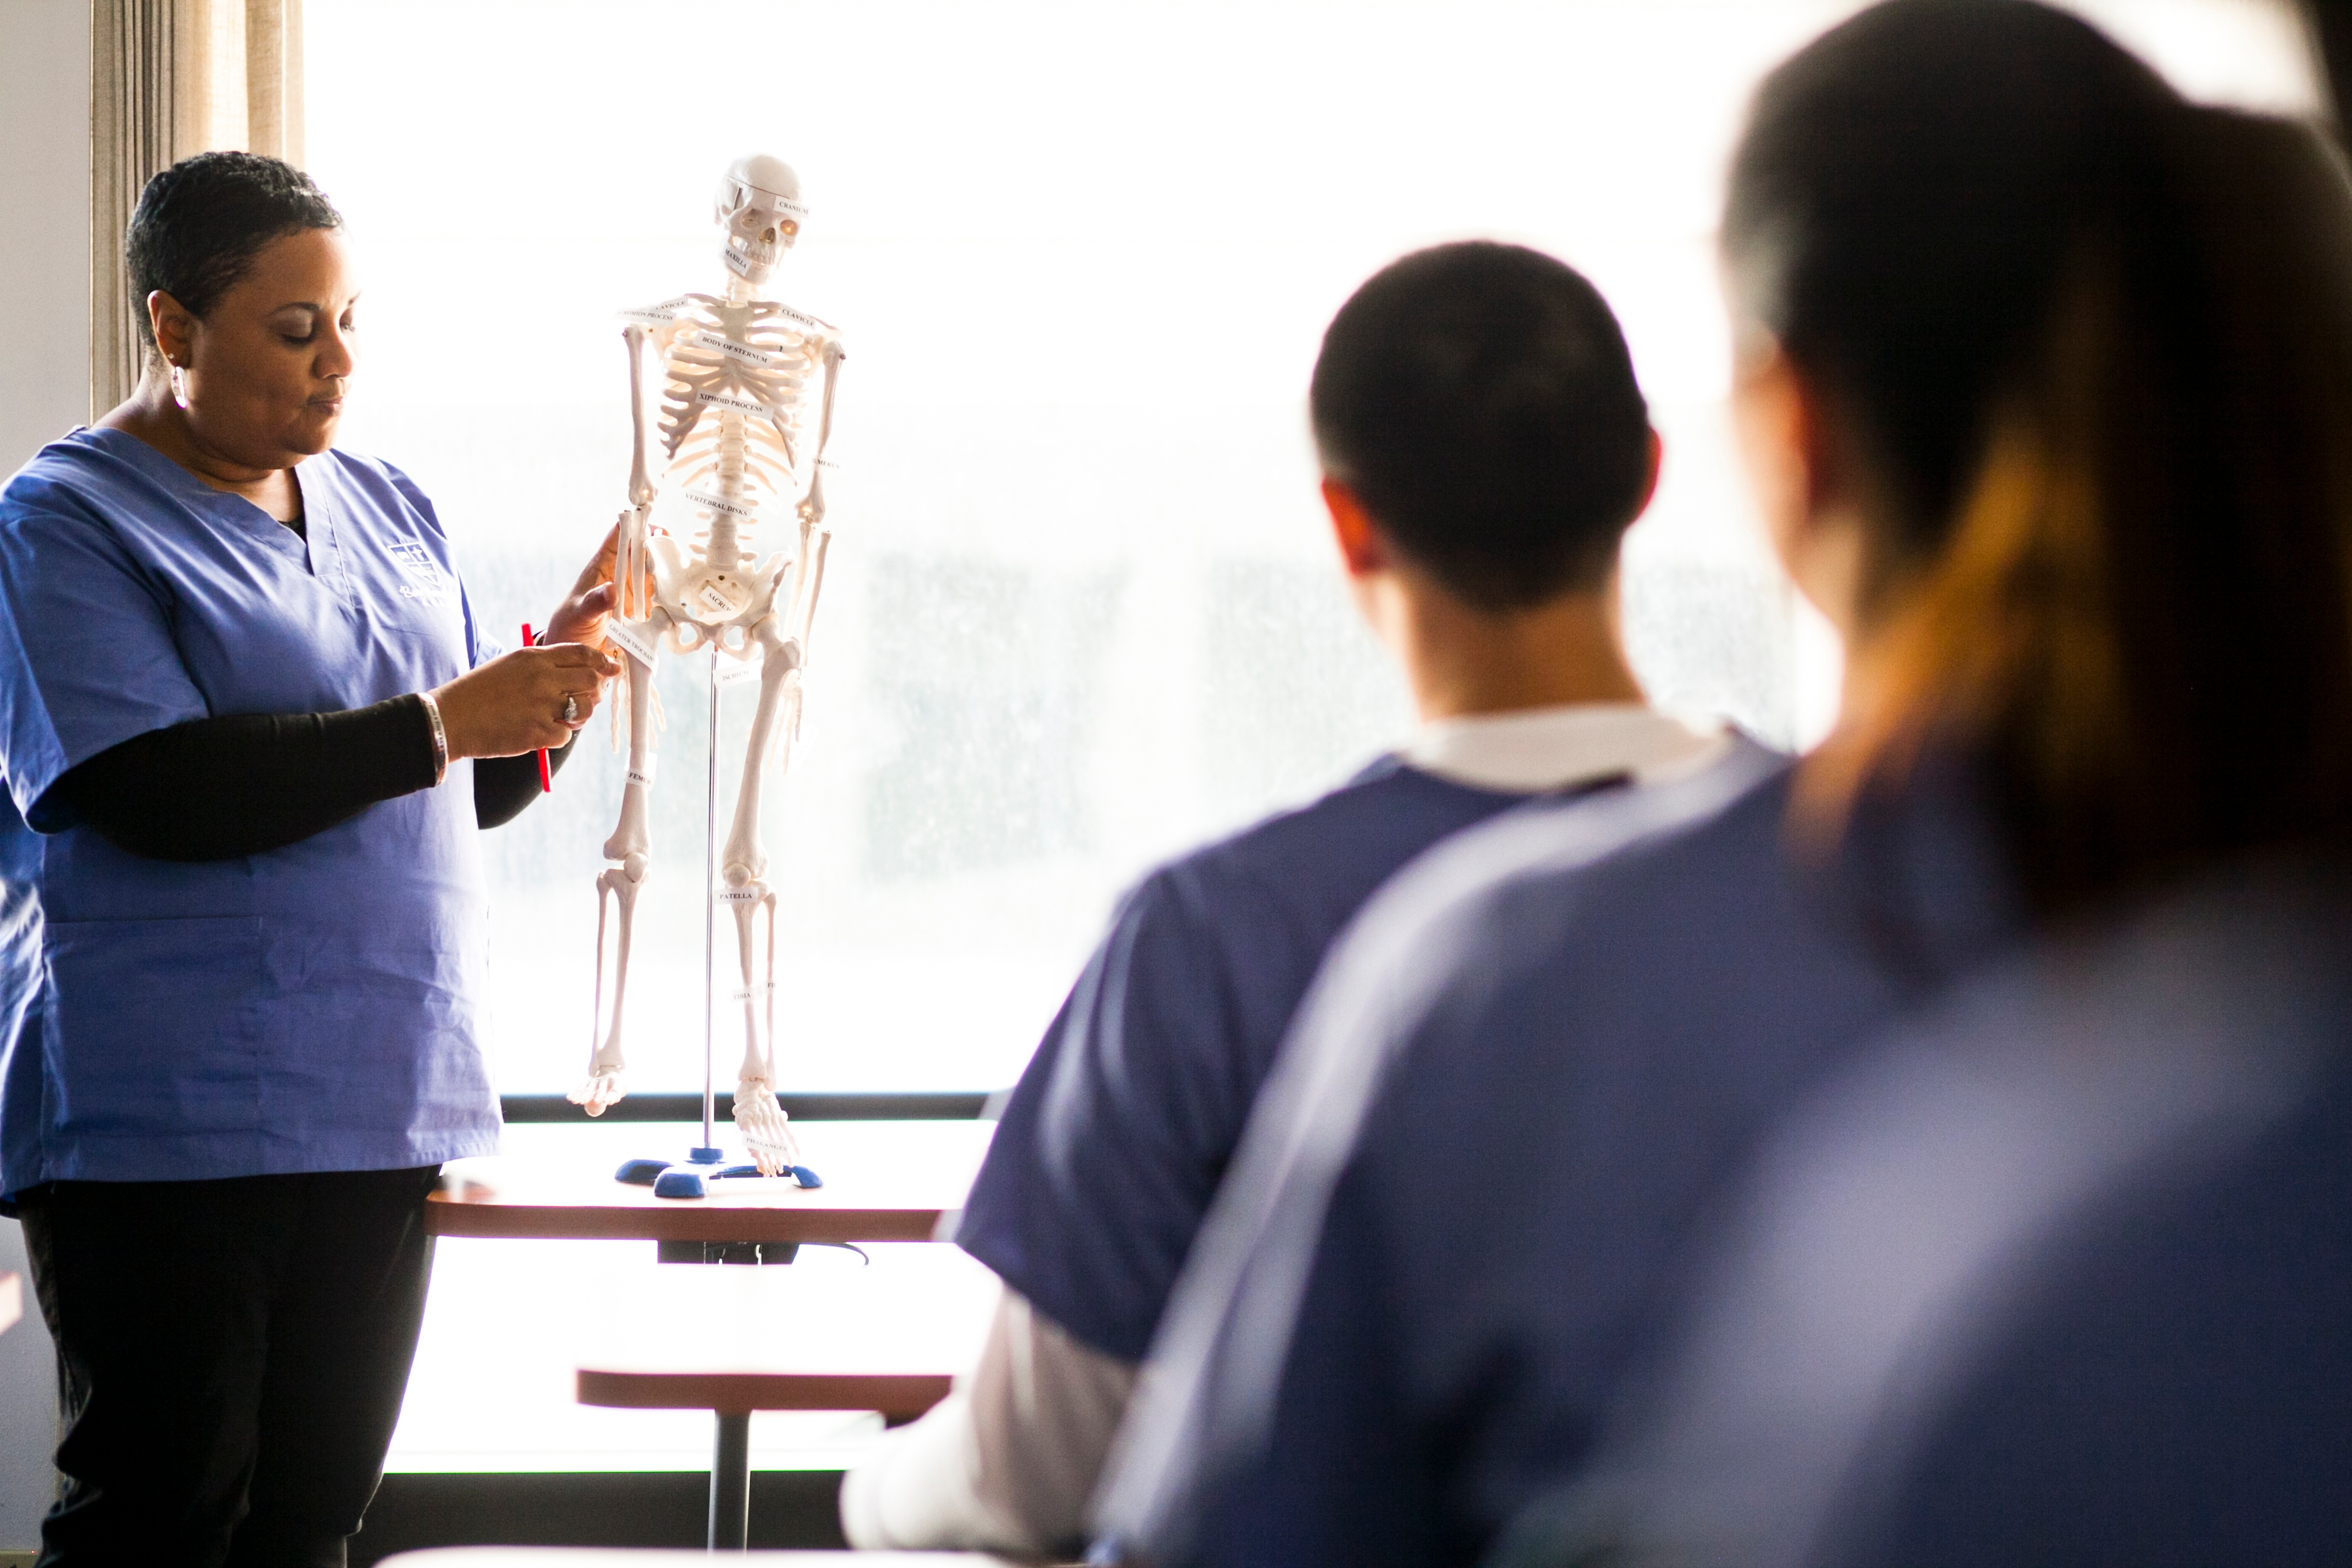 bama blog career change to become a medical assistant the next step is to a medical assistant training school that s going to prepare you for your new healthcare career